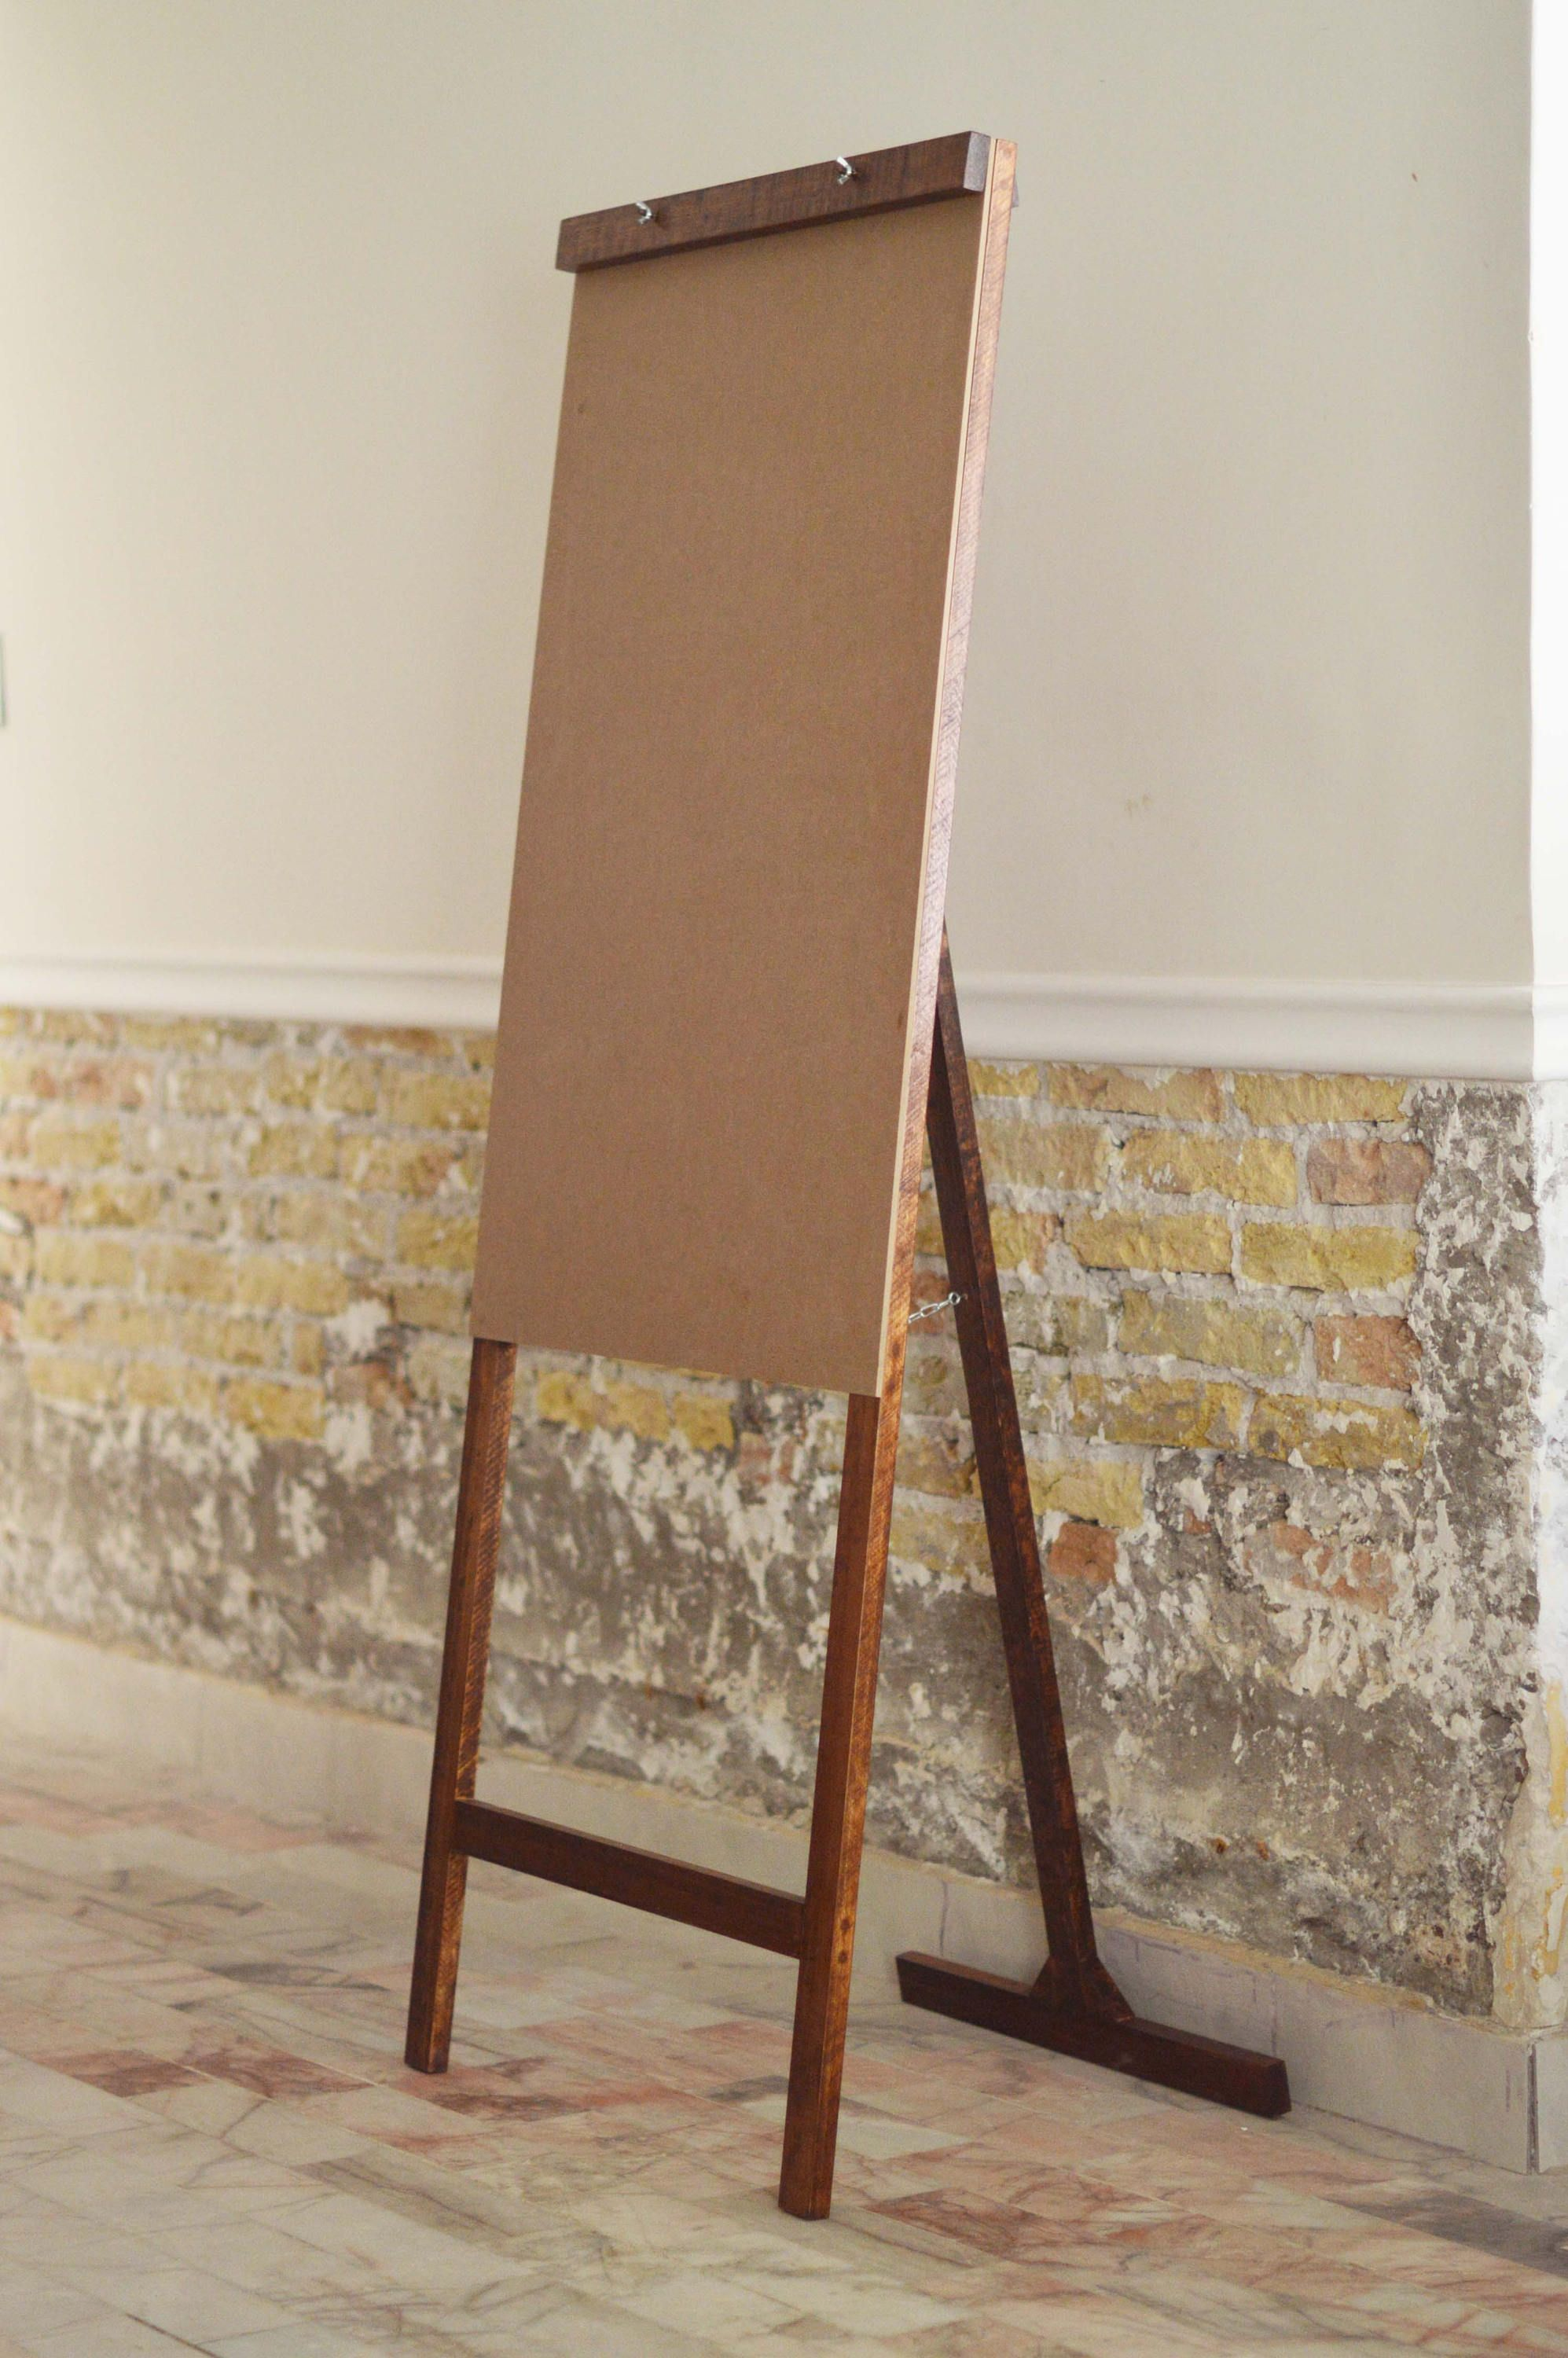 Furniture rustic newsprint in wood for office, home or school ...